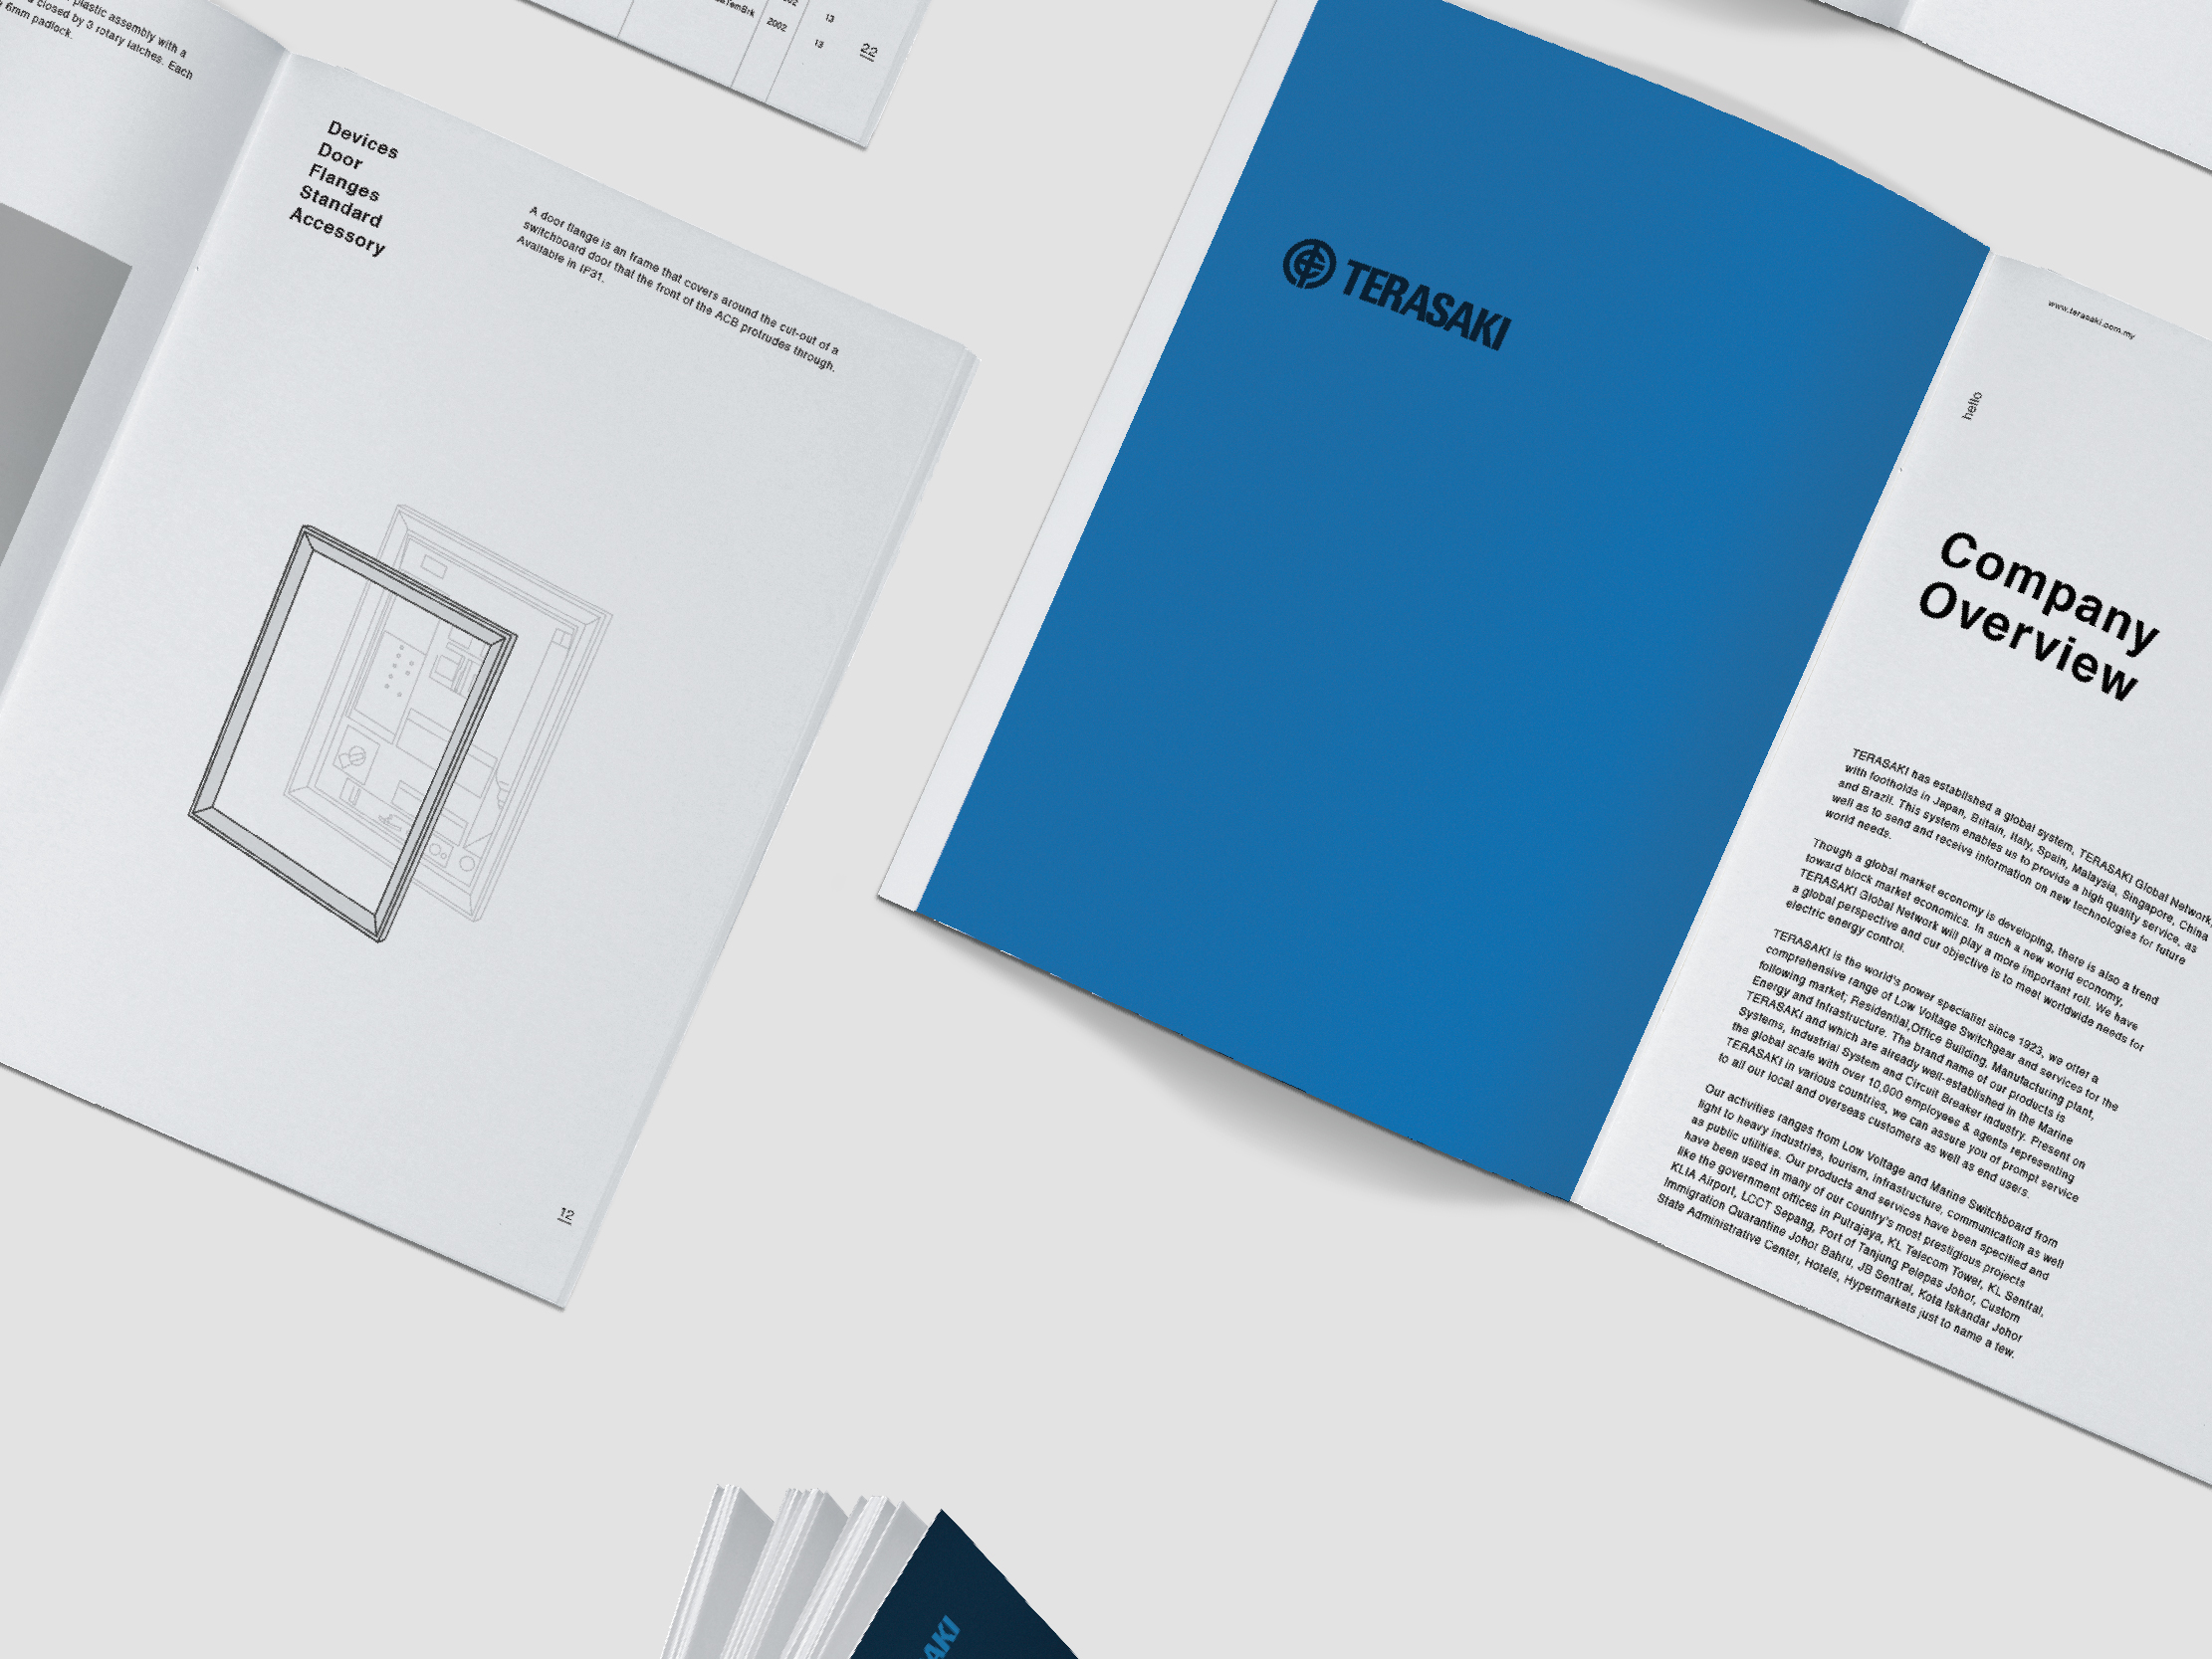 Terasaki Electric company profile inner pages clean layout design with product description and company overview